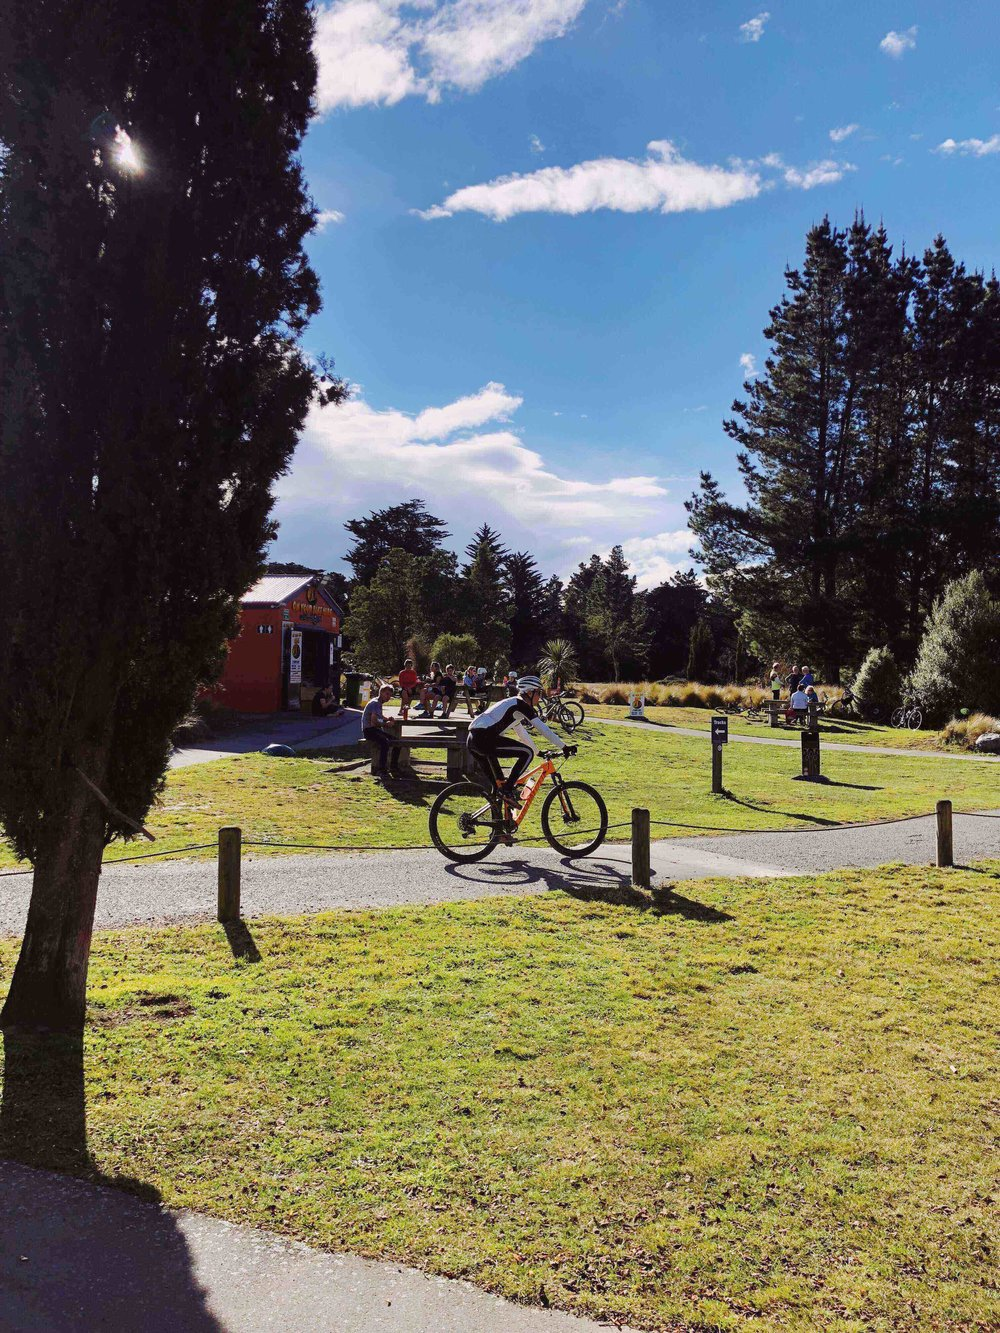 RENT A BIKE, BRING YOUR OWN OR SIMPLY WALK OR RUN AT MCLEAN'S ISLAND